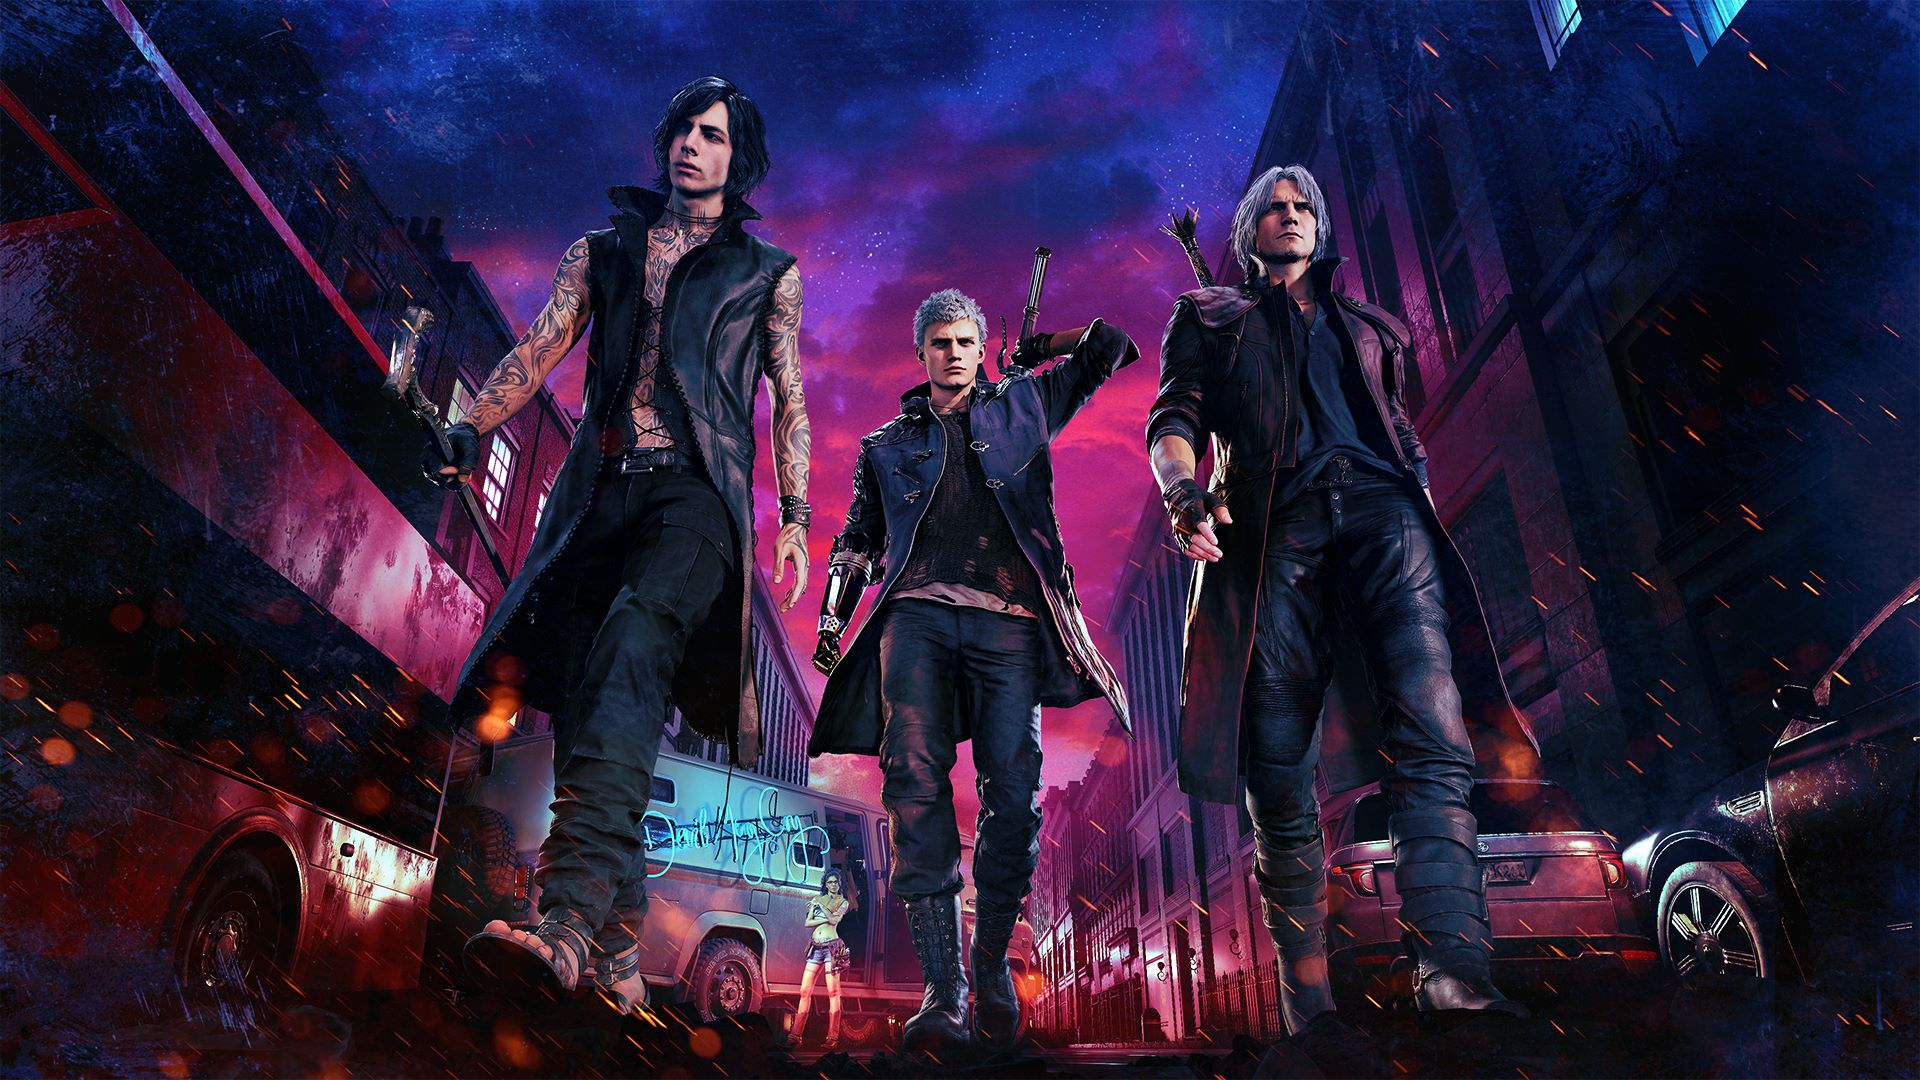 To unlock the Infinite Devil Trigger, you'll first need to get your hands on all of the Super Alternate Costumes in Devil May Cry 5.